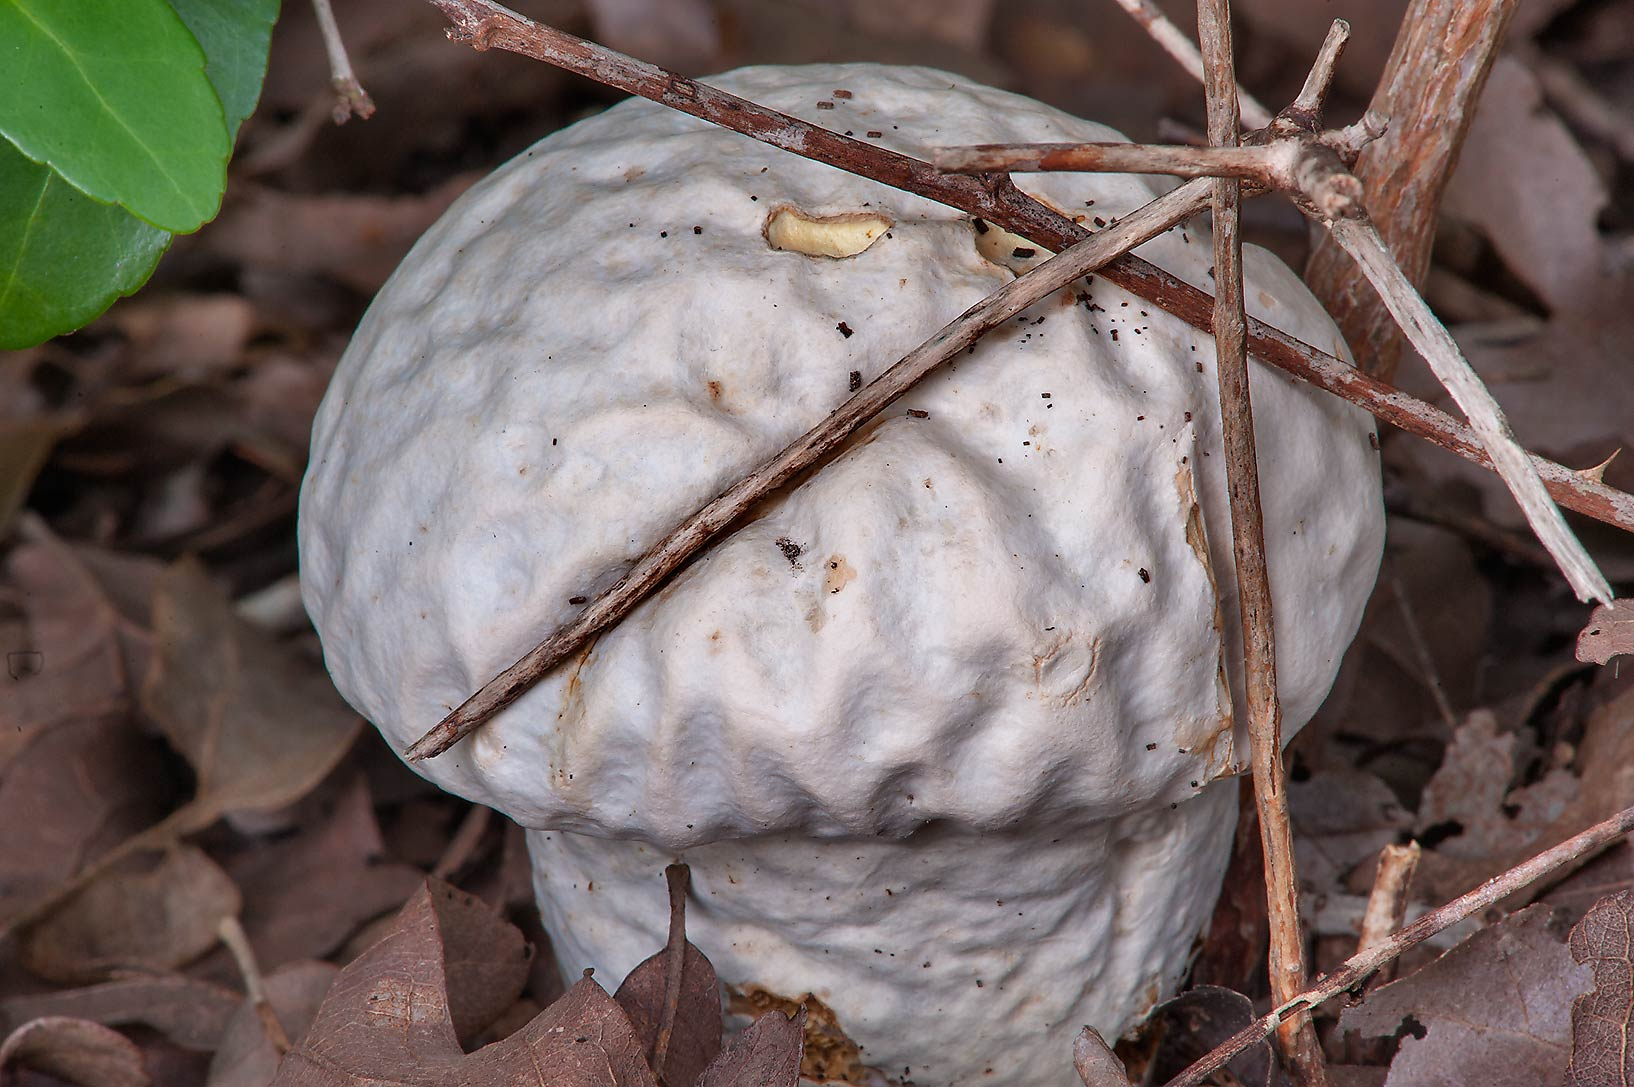 Brain puffball mushroom (Calvatia craniiformis) in Lick Creek Park. College Station, Texas